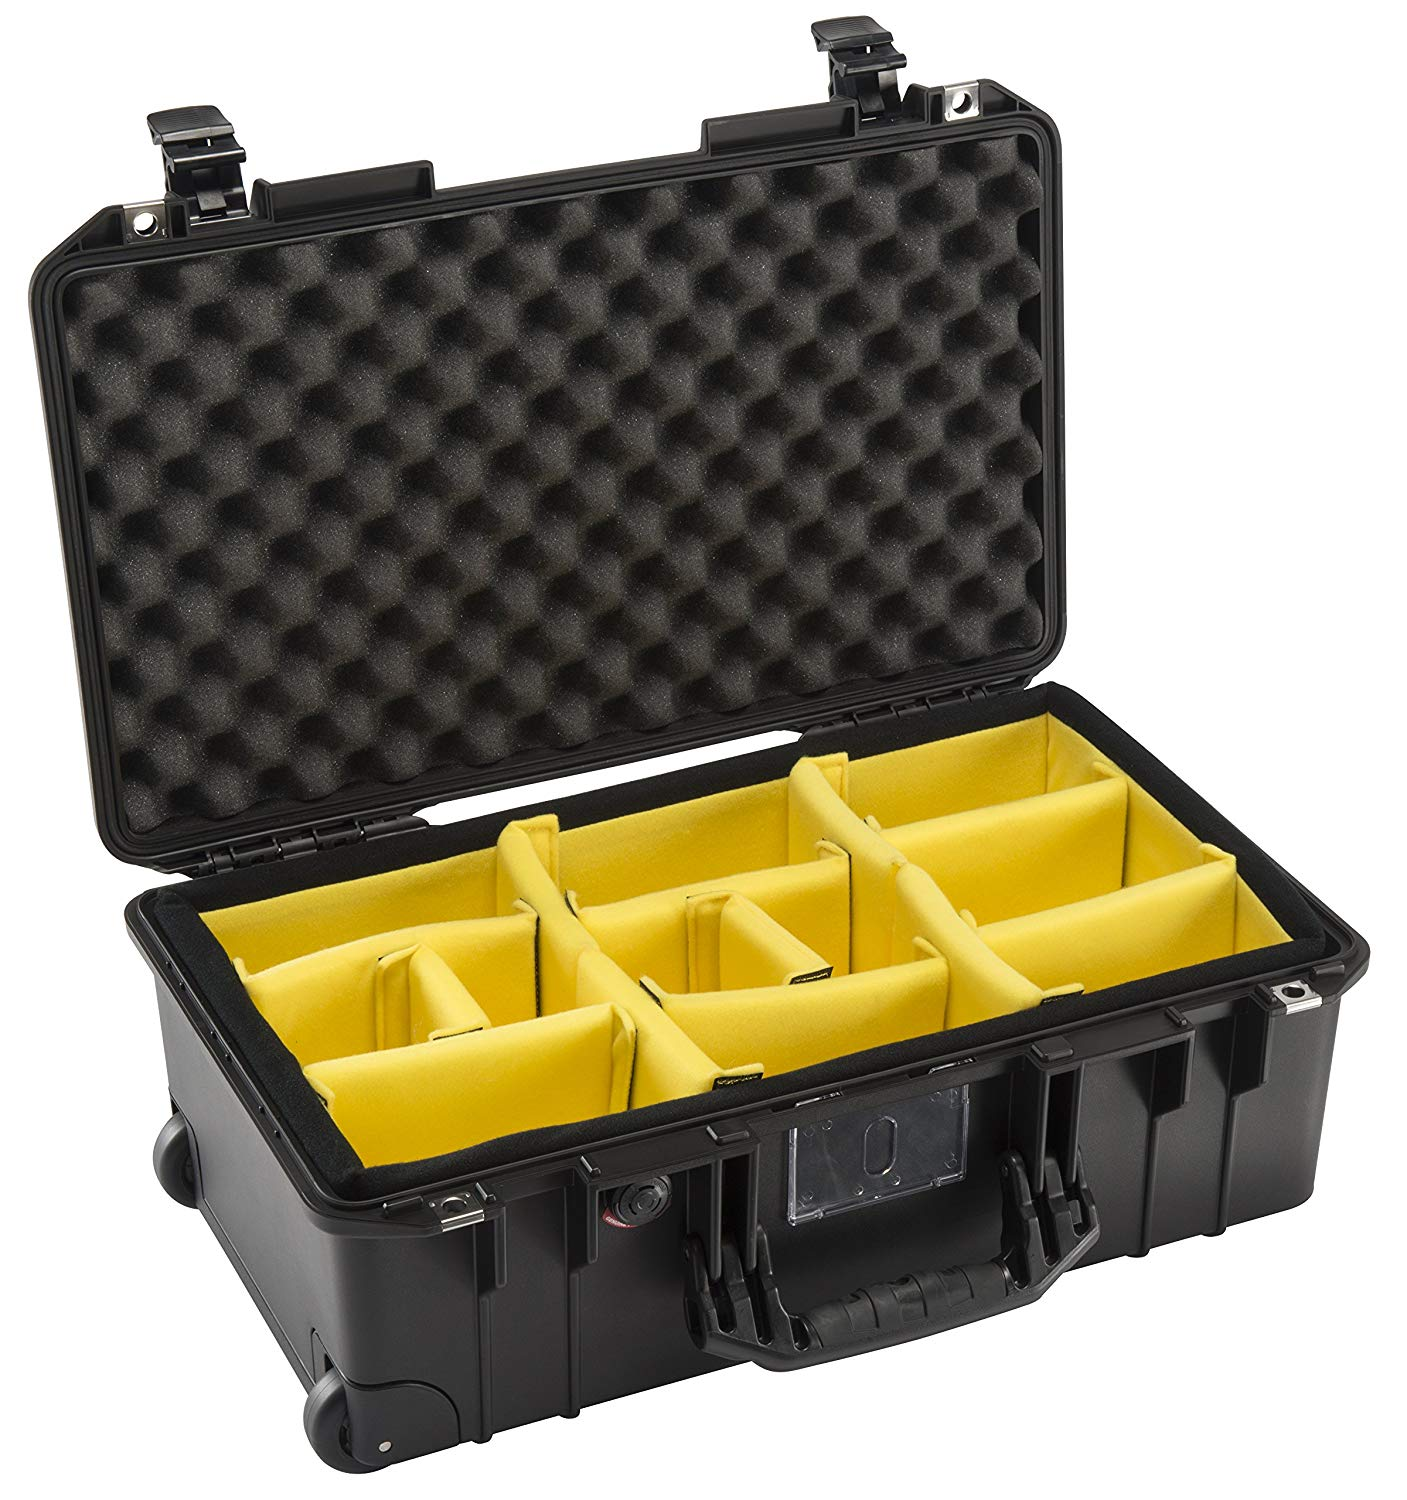 Pelican Air 1535 Case with Padded Dividers